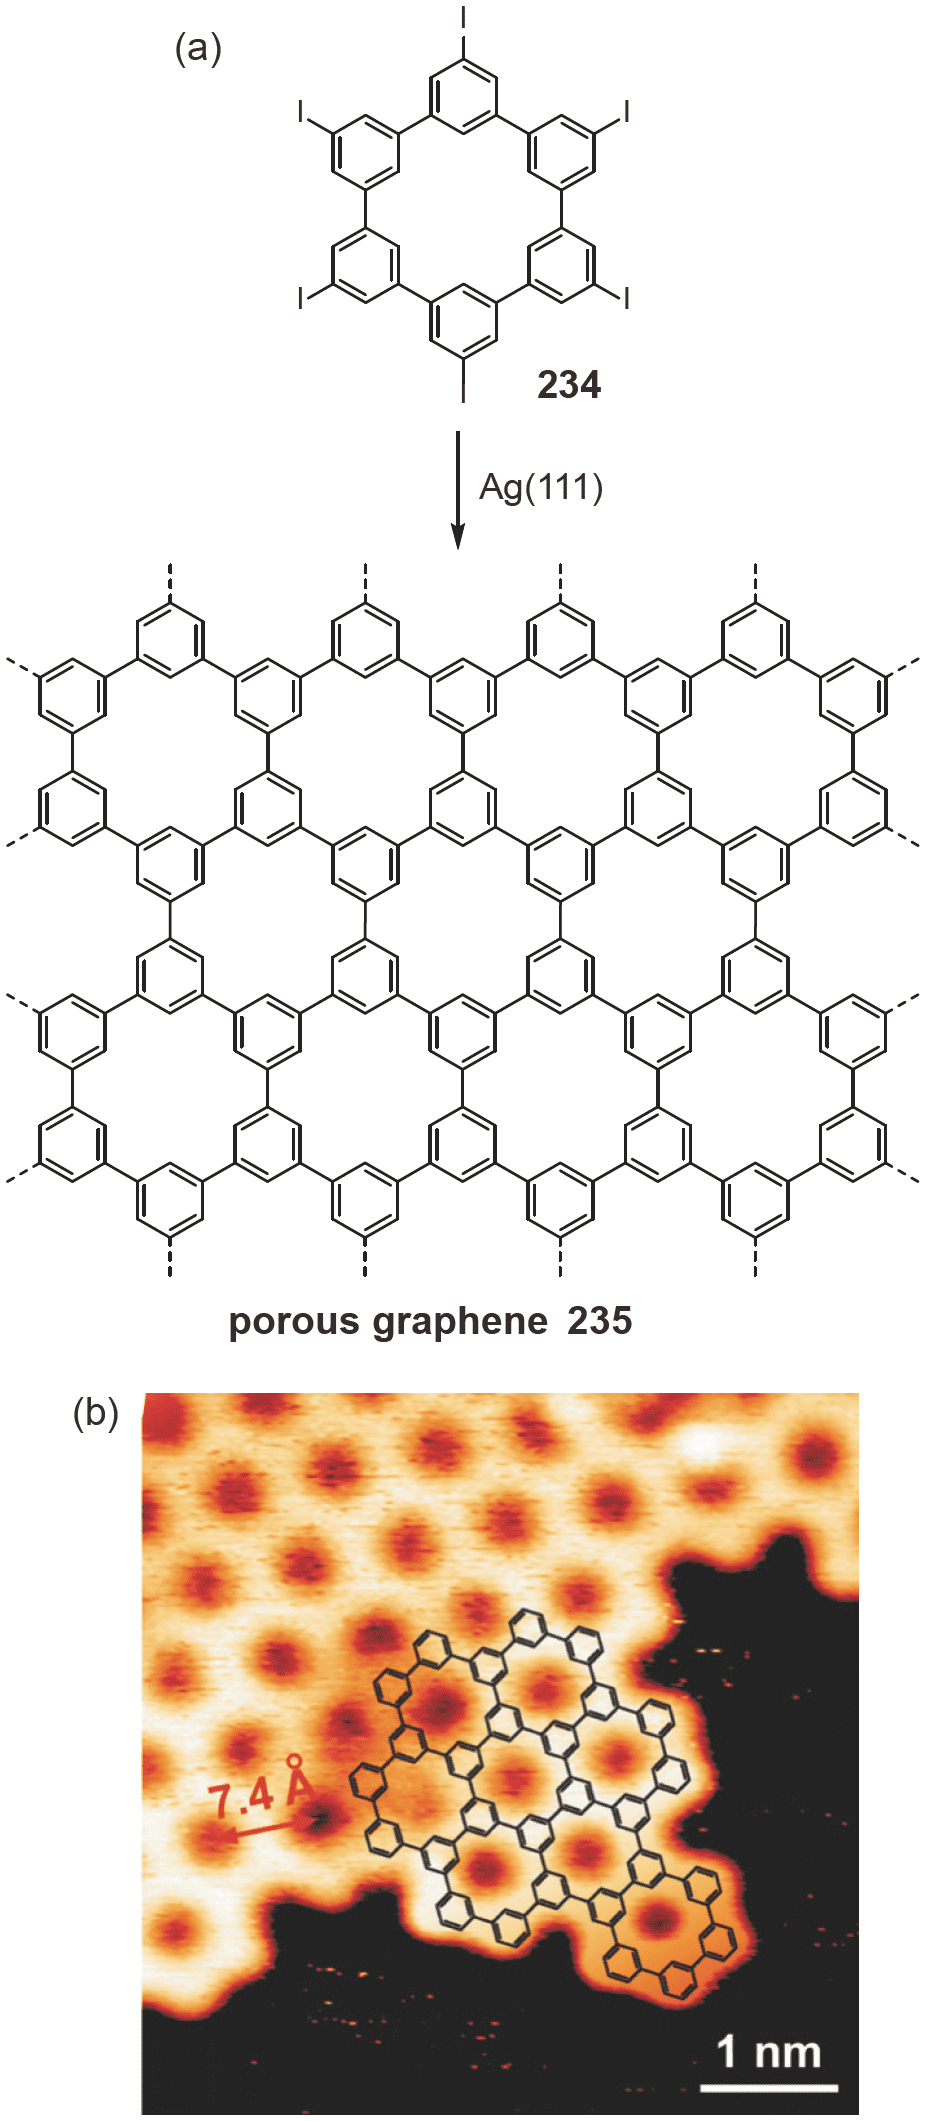 Polycyclic aromatic hydrocarbons in the graphene era